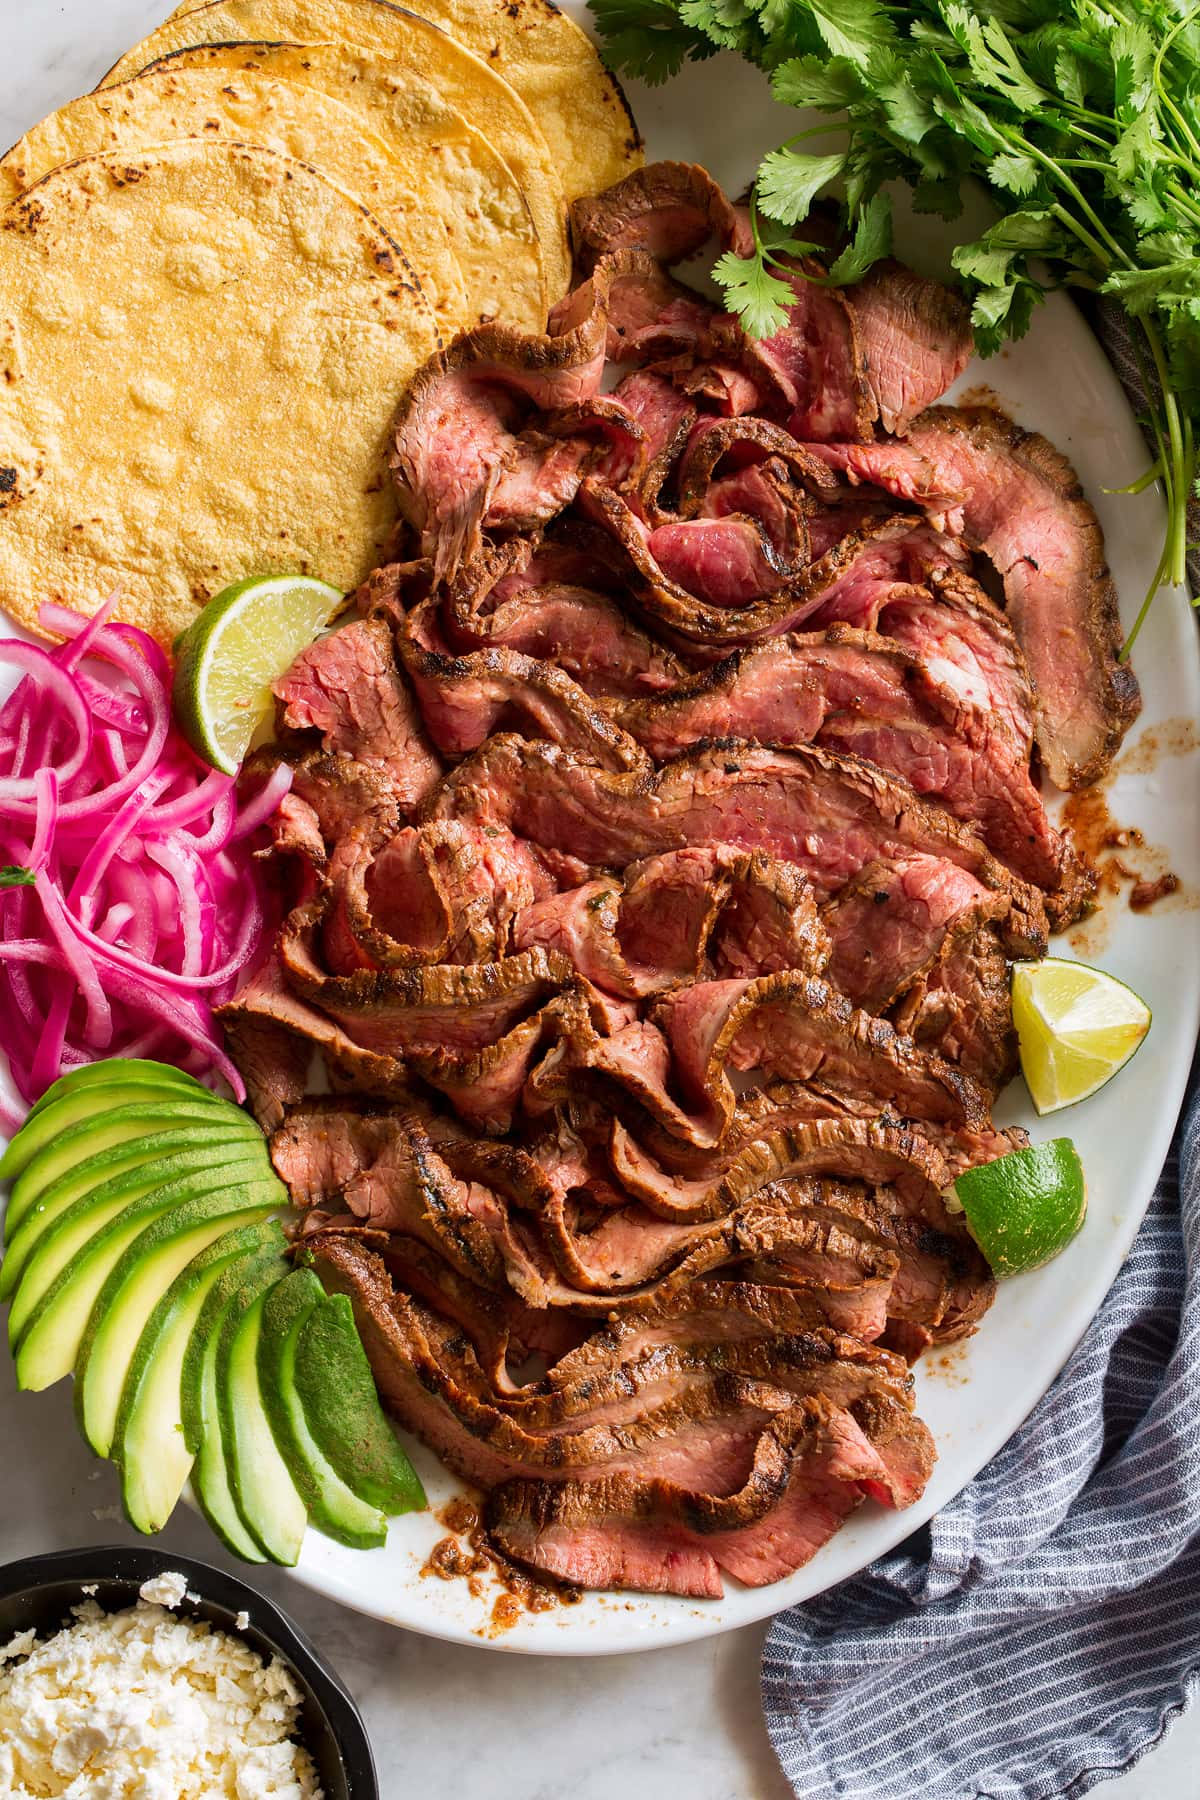 Overhead image of thin sliced carne asada on a serving platter with tortillas, onions, avocado, lime and cilantro.